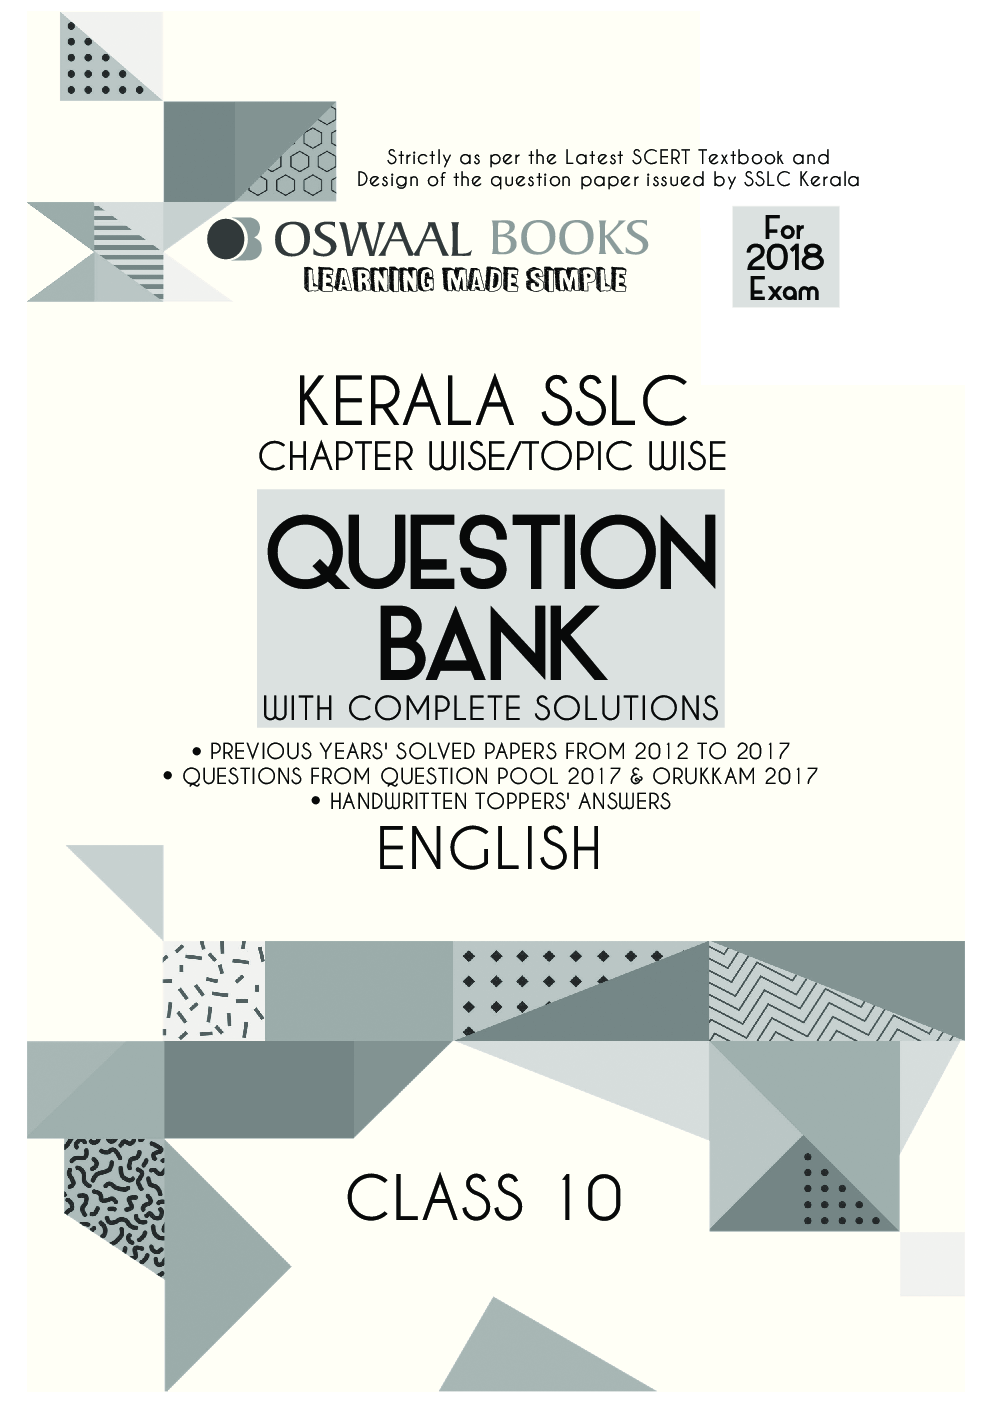 Oswaal kerala sslc chapterwise topicwise question bank for class x oswaal kerala sslc chapterwise topicwise question bank for class x english march 2018 exam by panel of experts fandeluxe Choice Image